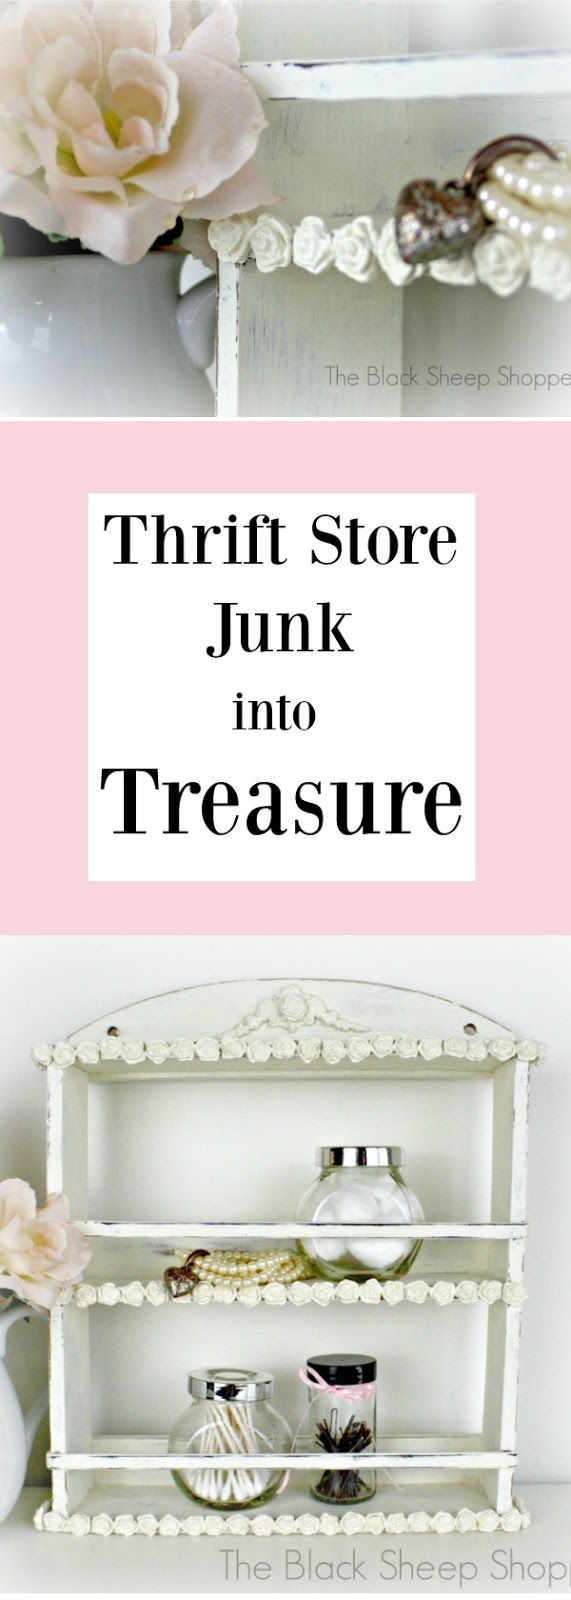 Turn thrift store junk into treasure